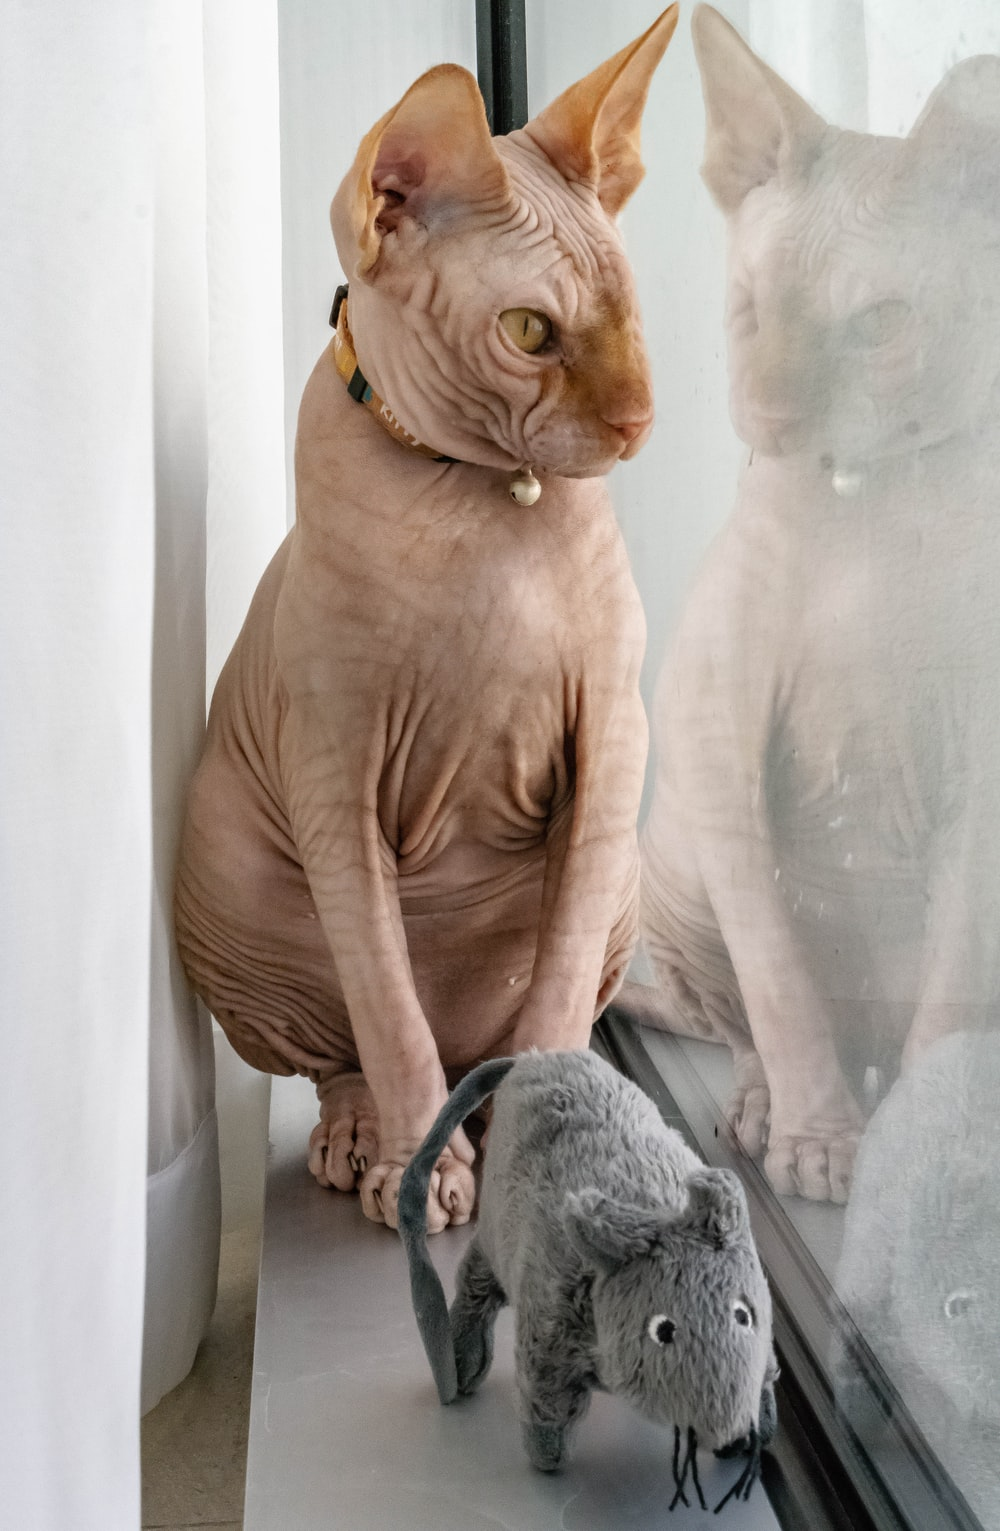 Sphinx cat sits beside glass window with gray rat plush toy